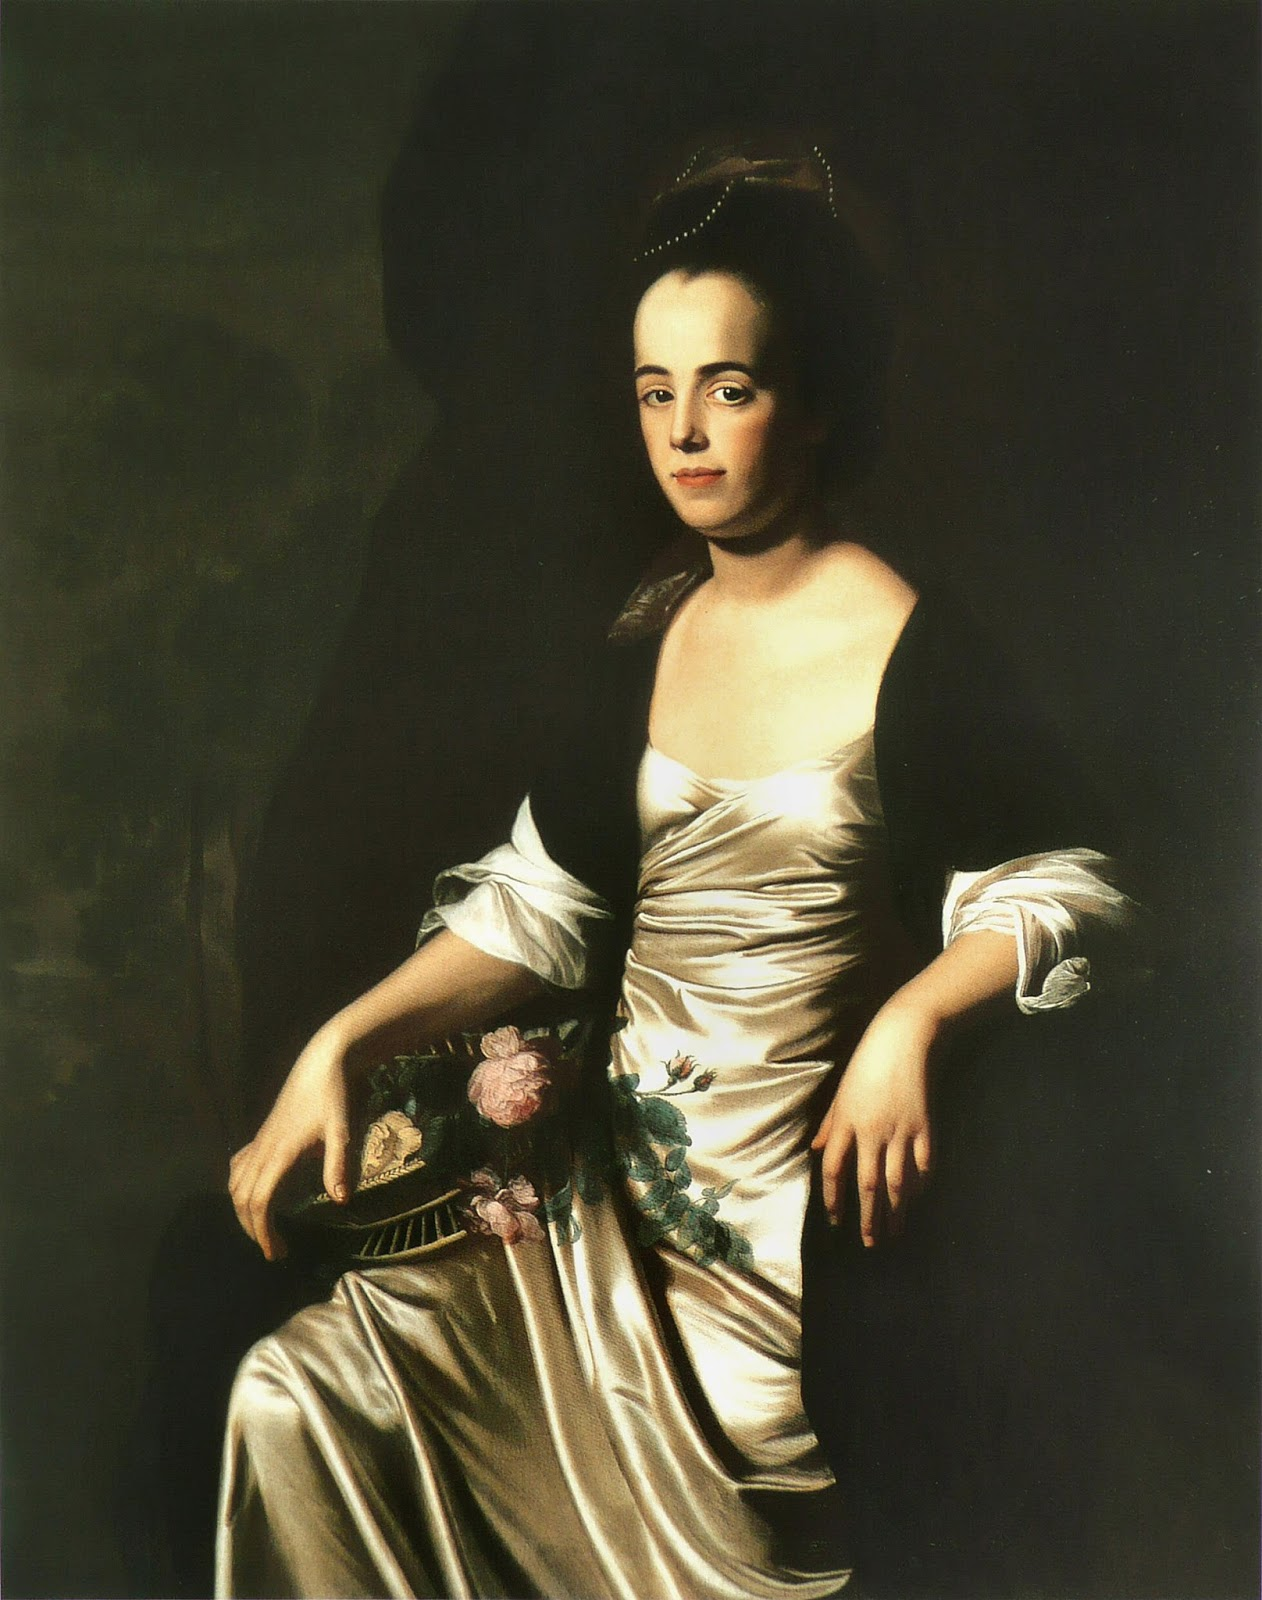 judith sargent murray on the equality of the sexes essay Judith sargent murray – on the equality of the sexes a brief video introduction to judith sargent murray and her essay, on the equality of the sexesfor an american.